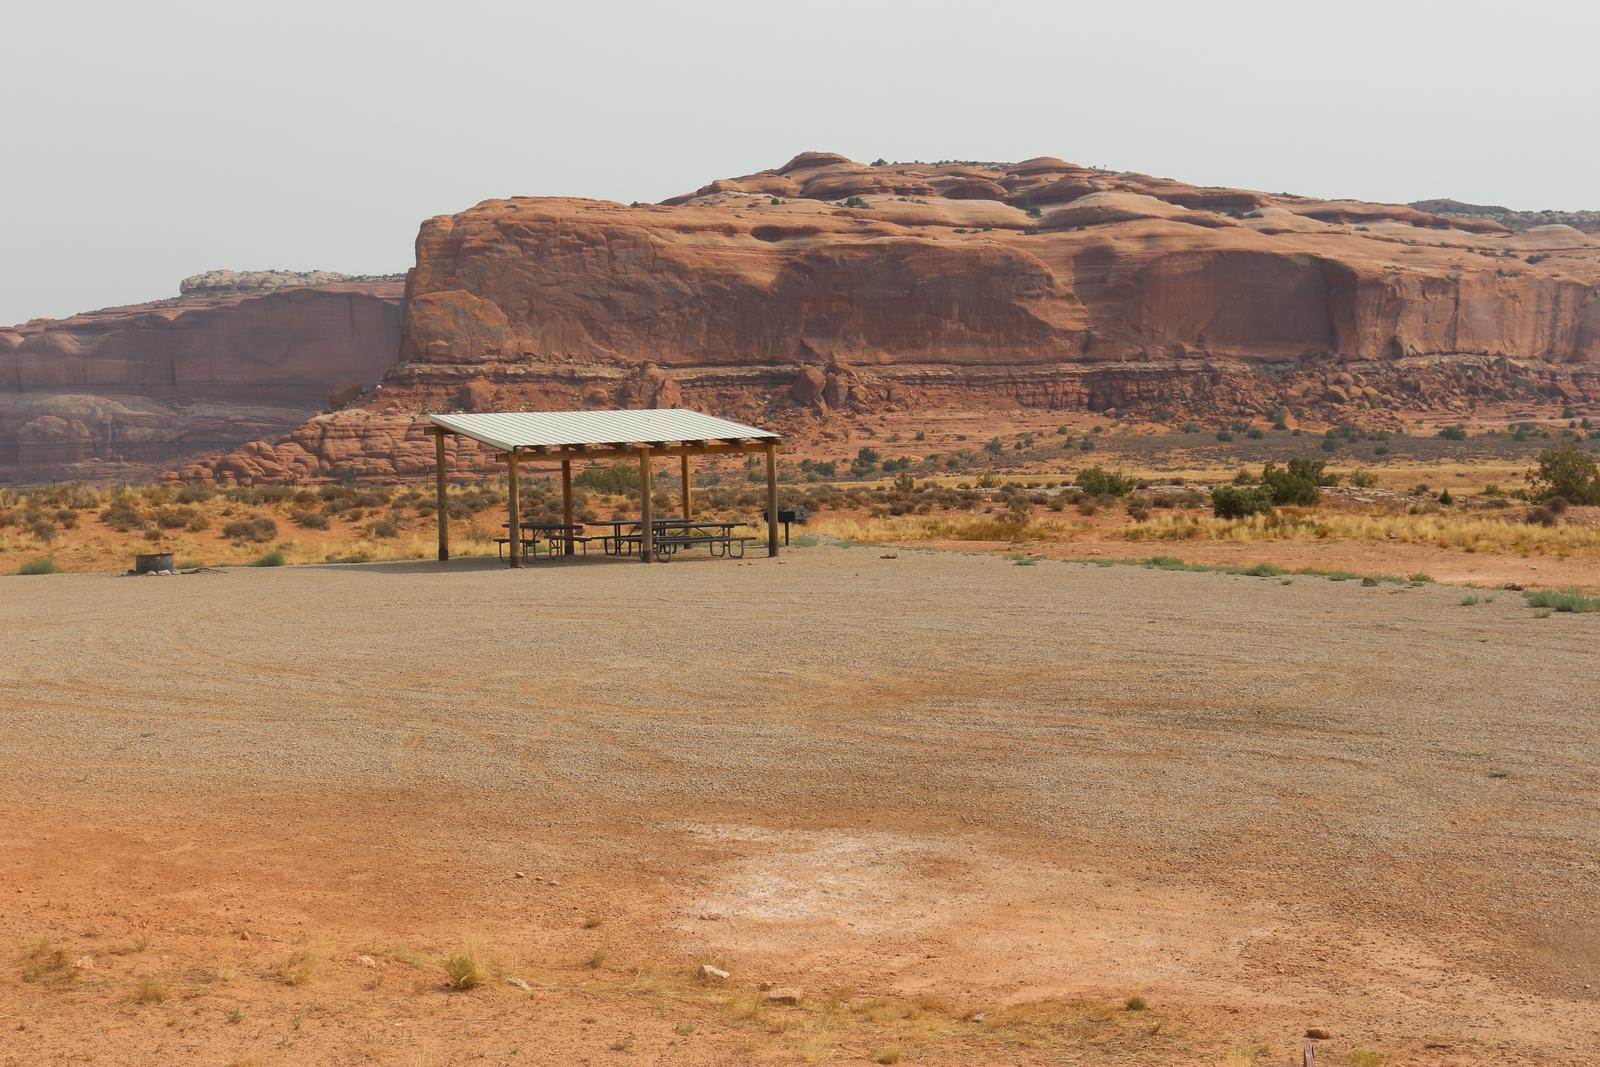 Lone Mesa Group Site B shade shelter and picnic tables. Red rock cliffs in the distance.